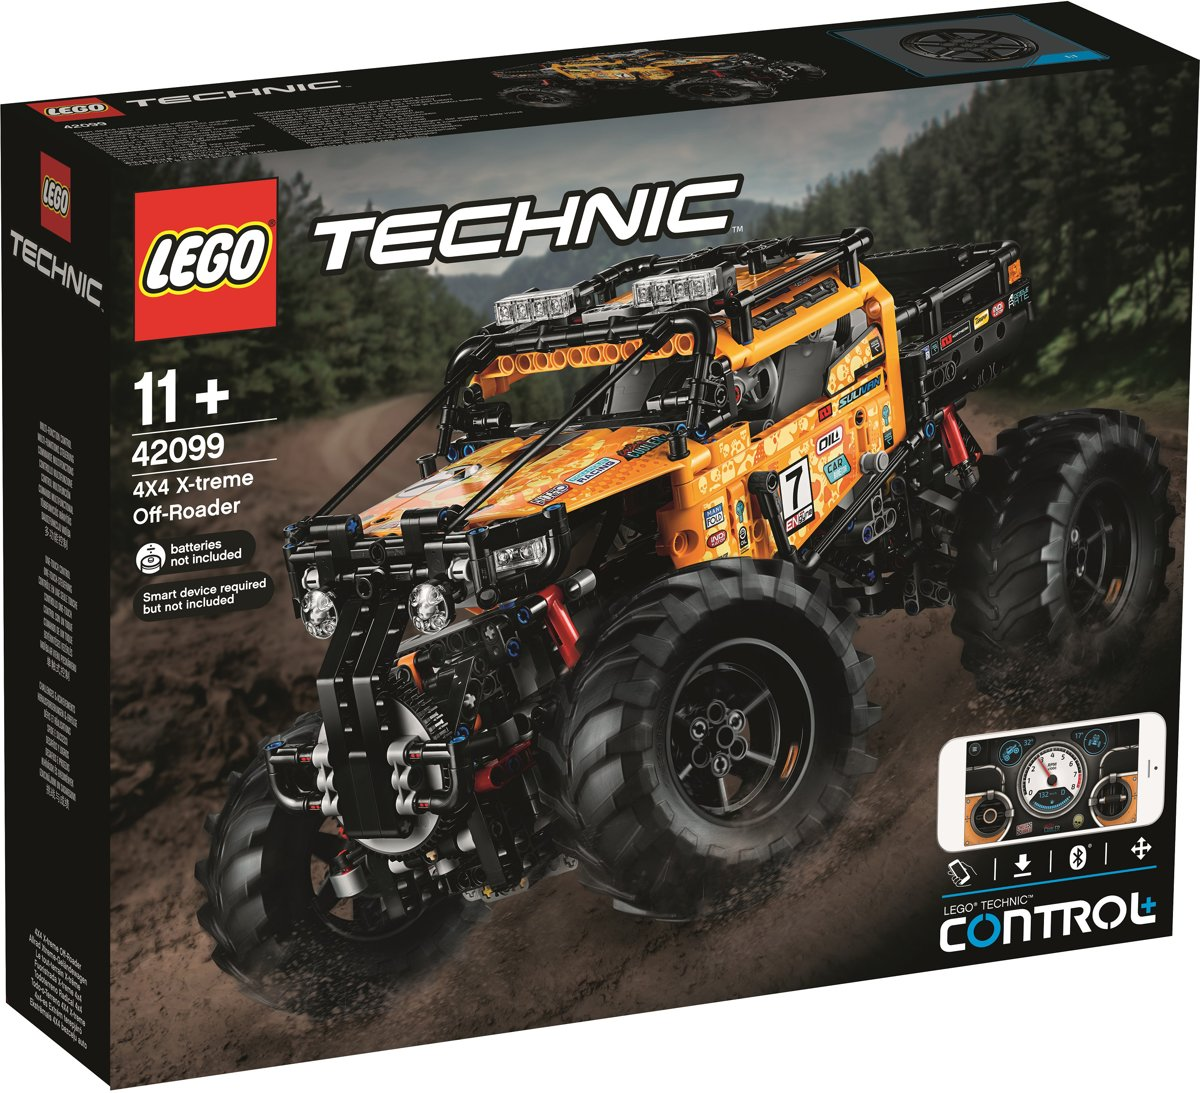 LEGO Technic RC X-treme Off-roader - 42099